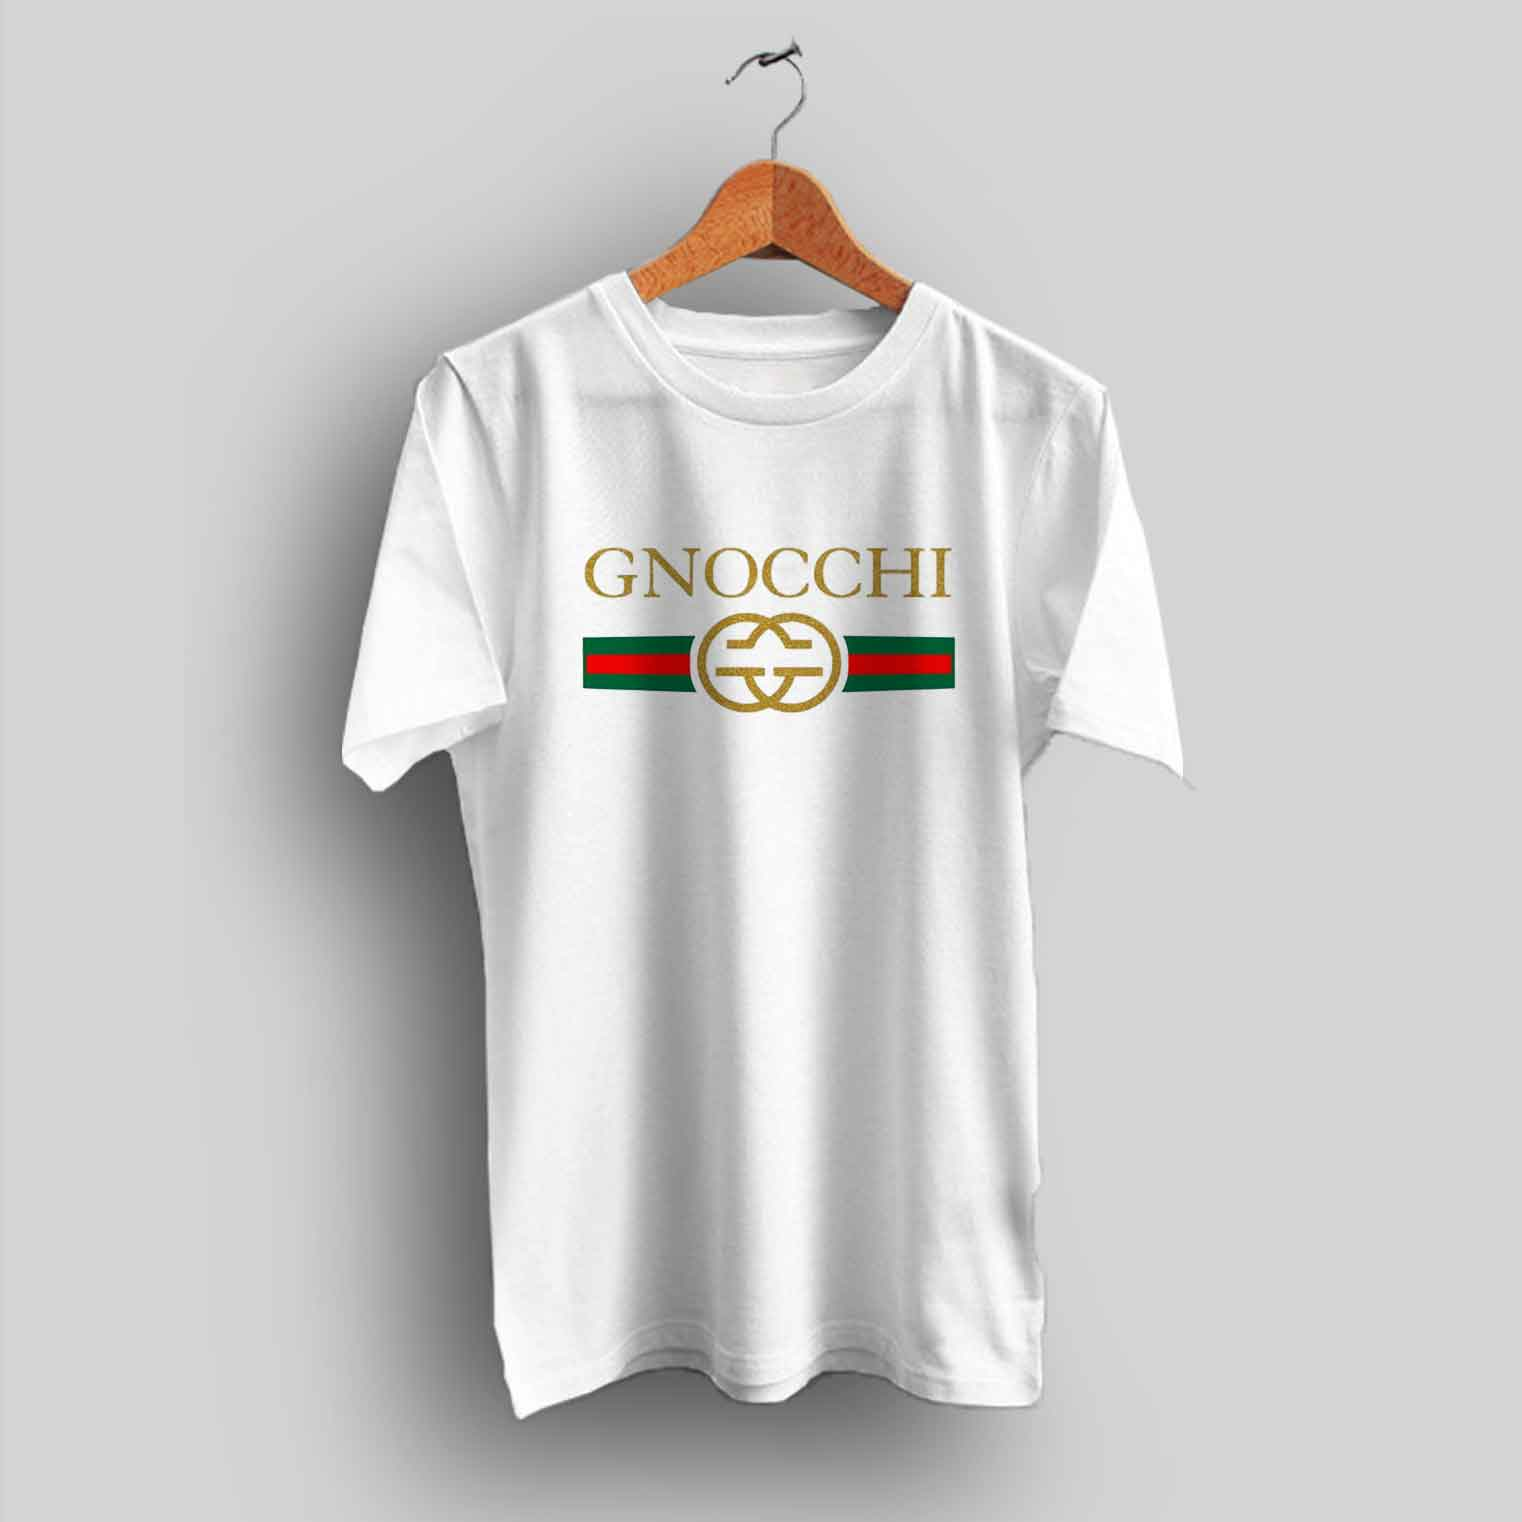 b92e8ce7e44f9 For Sale Gnocchi Vintage GC Parody T Shirt Cheap Urban Clothing